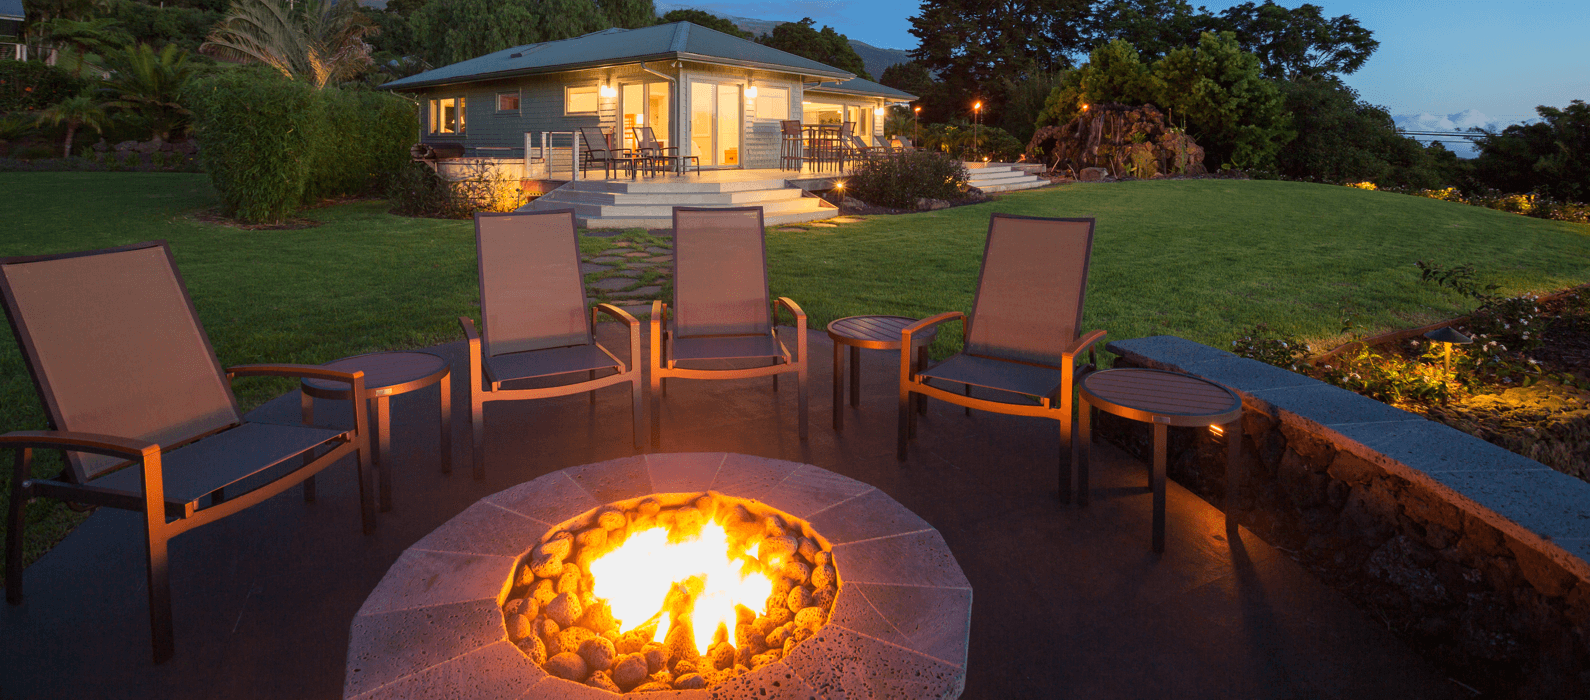 Broadview Homes Suggestions for a Beautiful Outdoor Space featured image